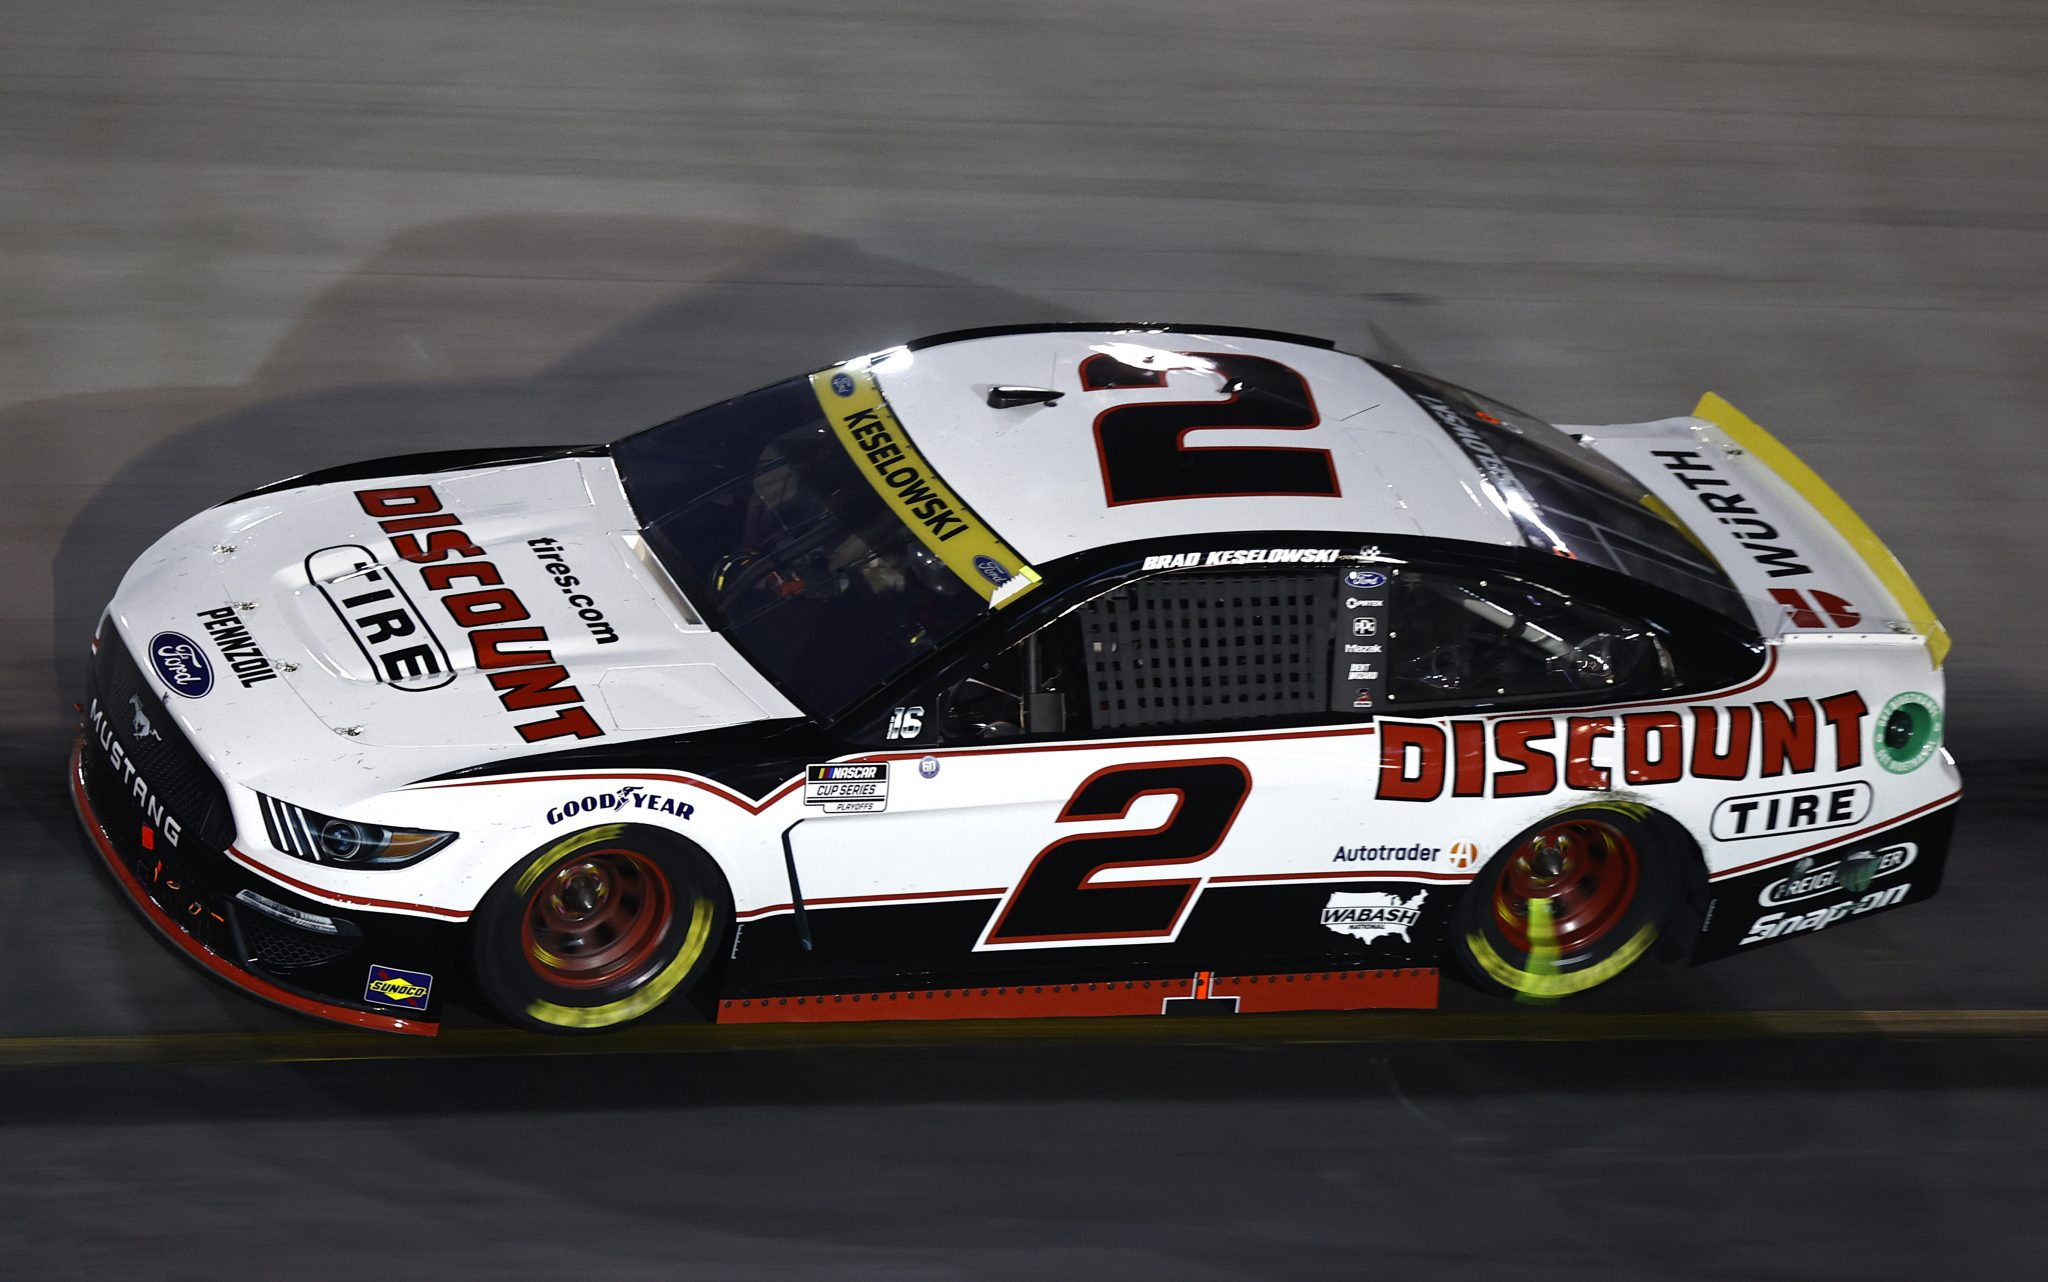 BRISTOL, TENNESSEE - SEPTEMBER 18: Brad Keselowski, driver of the #2 Discount Tire Ford, drives during the NASCAR Cup Series Bass Pro Shops Night Race at Bristol Motor Speedway on September 18, 2021 in Bristol, Tennessee. (Photo by Jared C. Tilton/Getty Images)   Getty Images